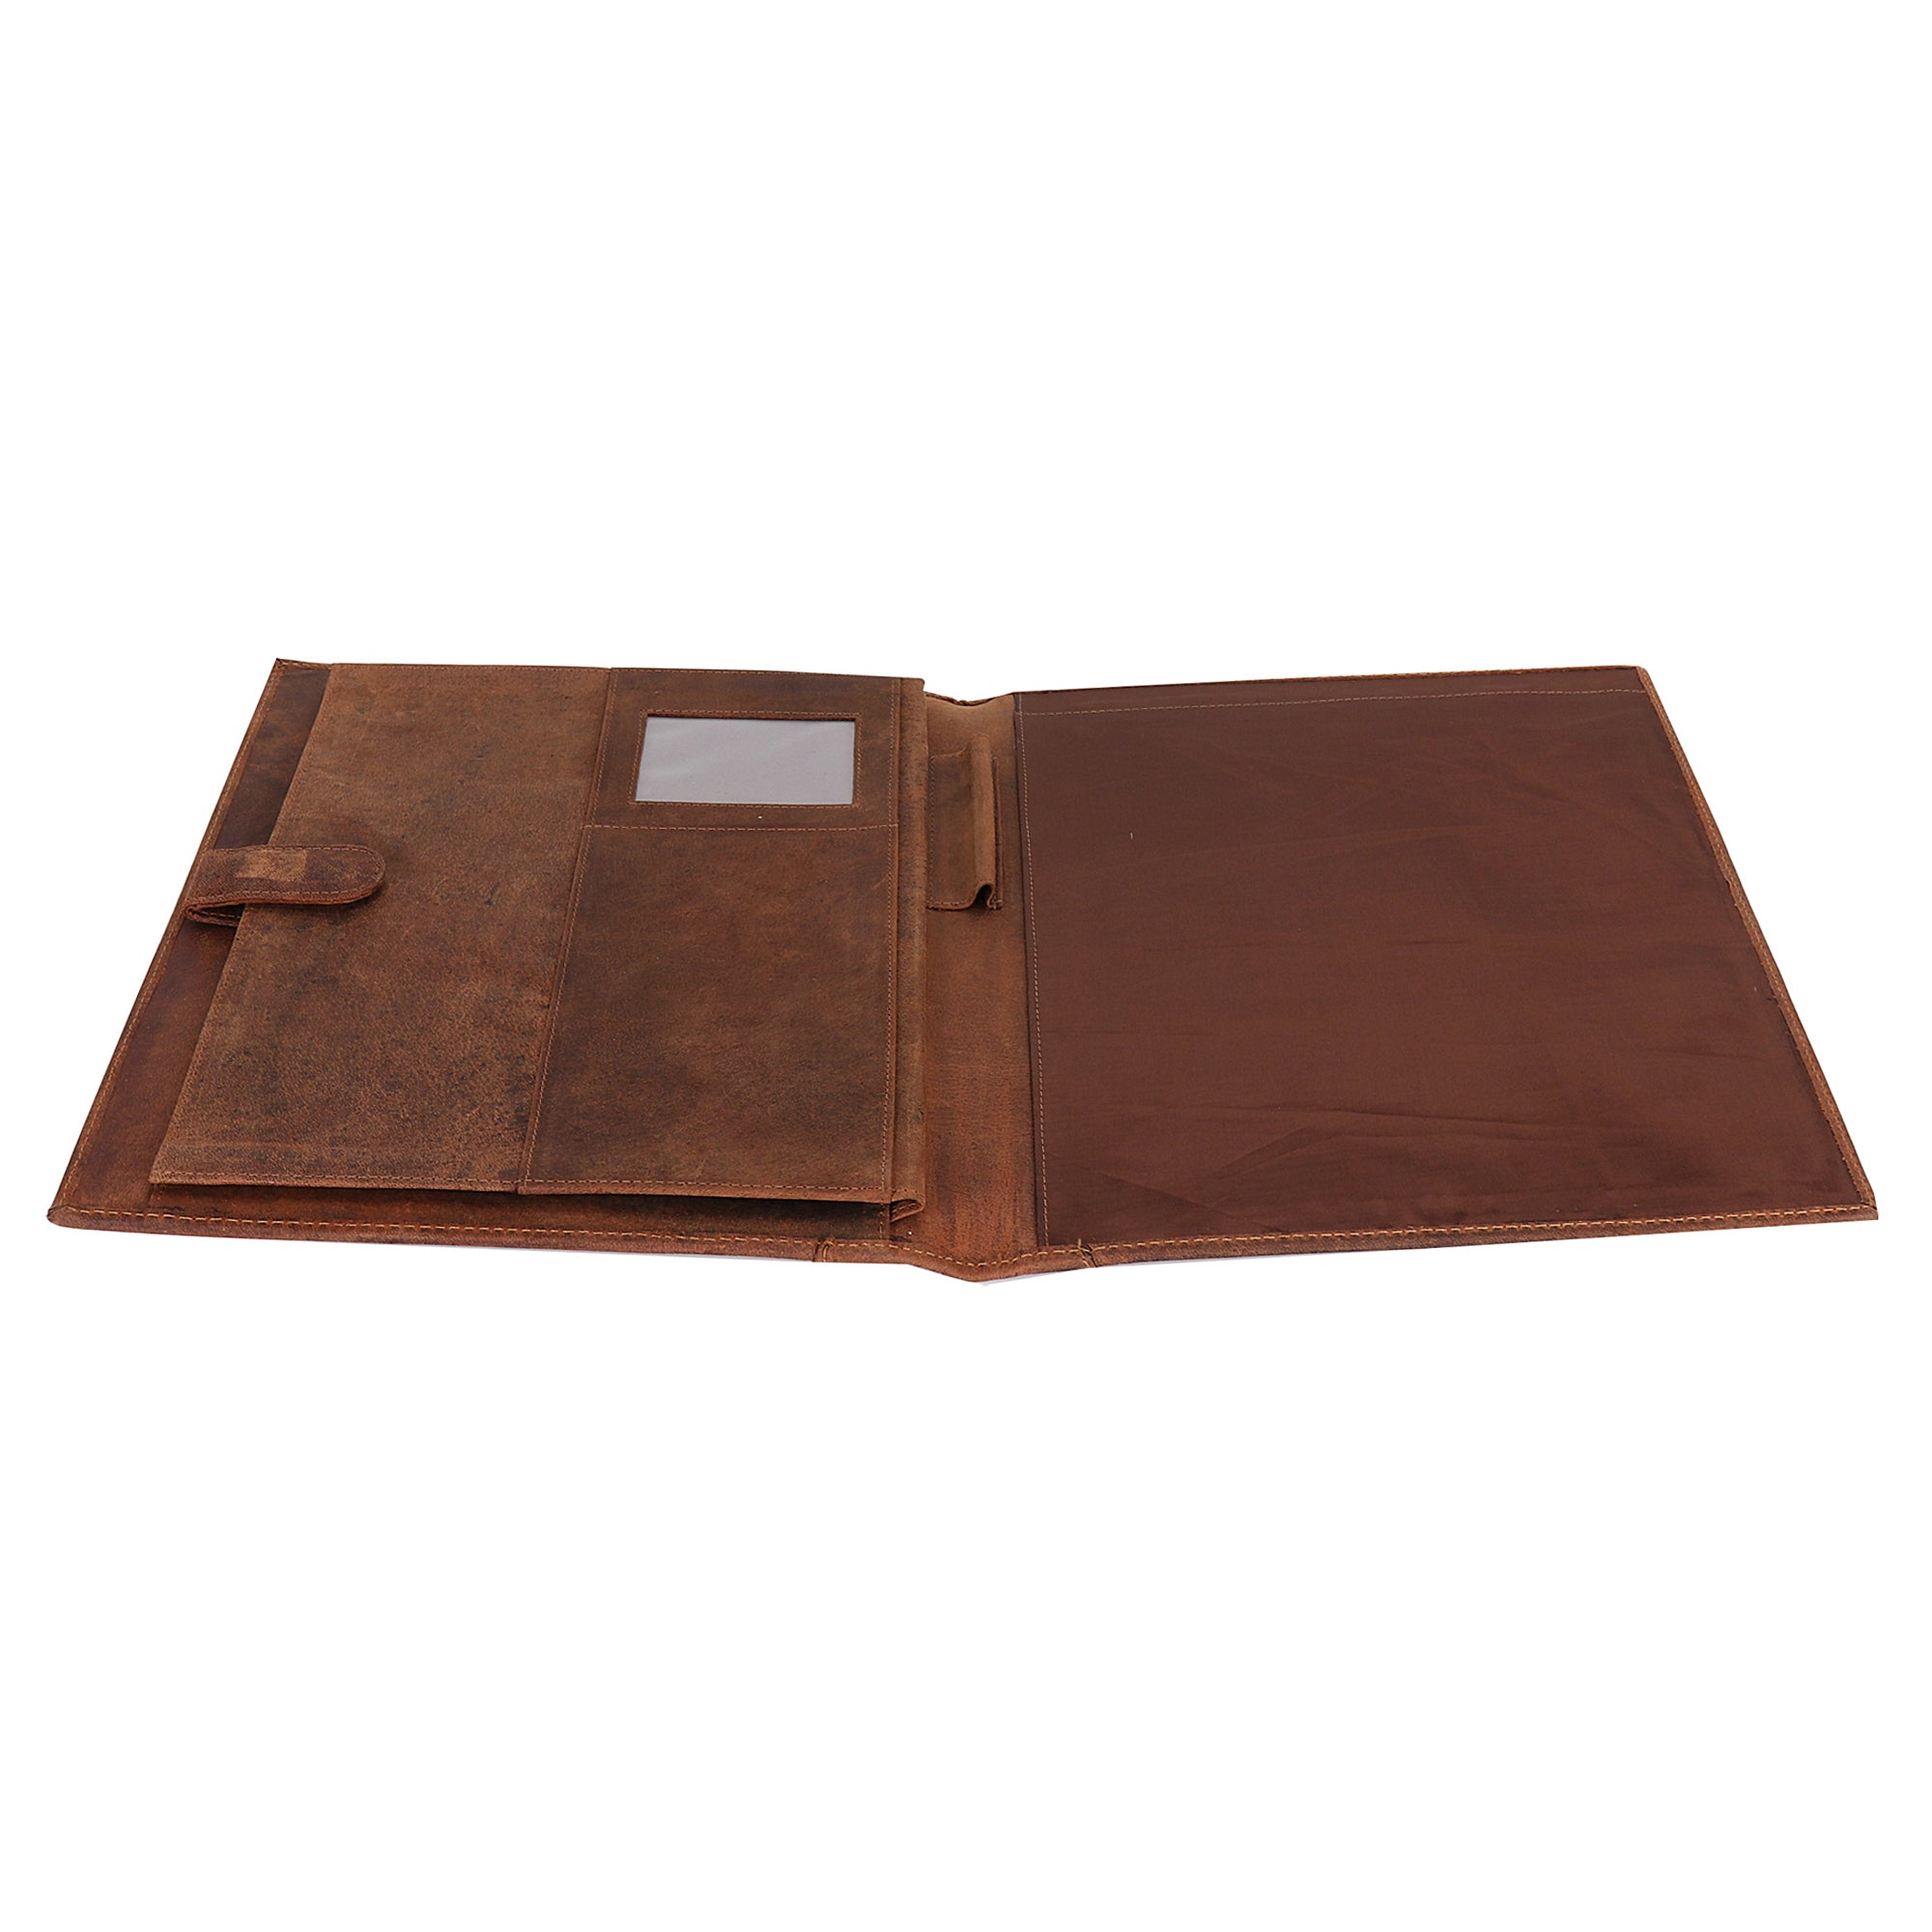 Handmade Business Leather Portfolio Professional Organizer Men Women (Brown)